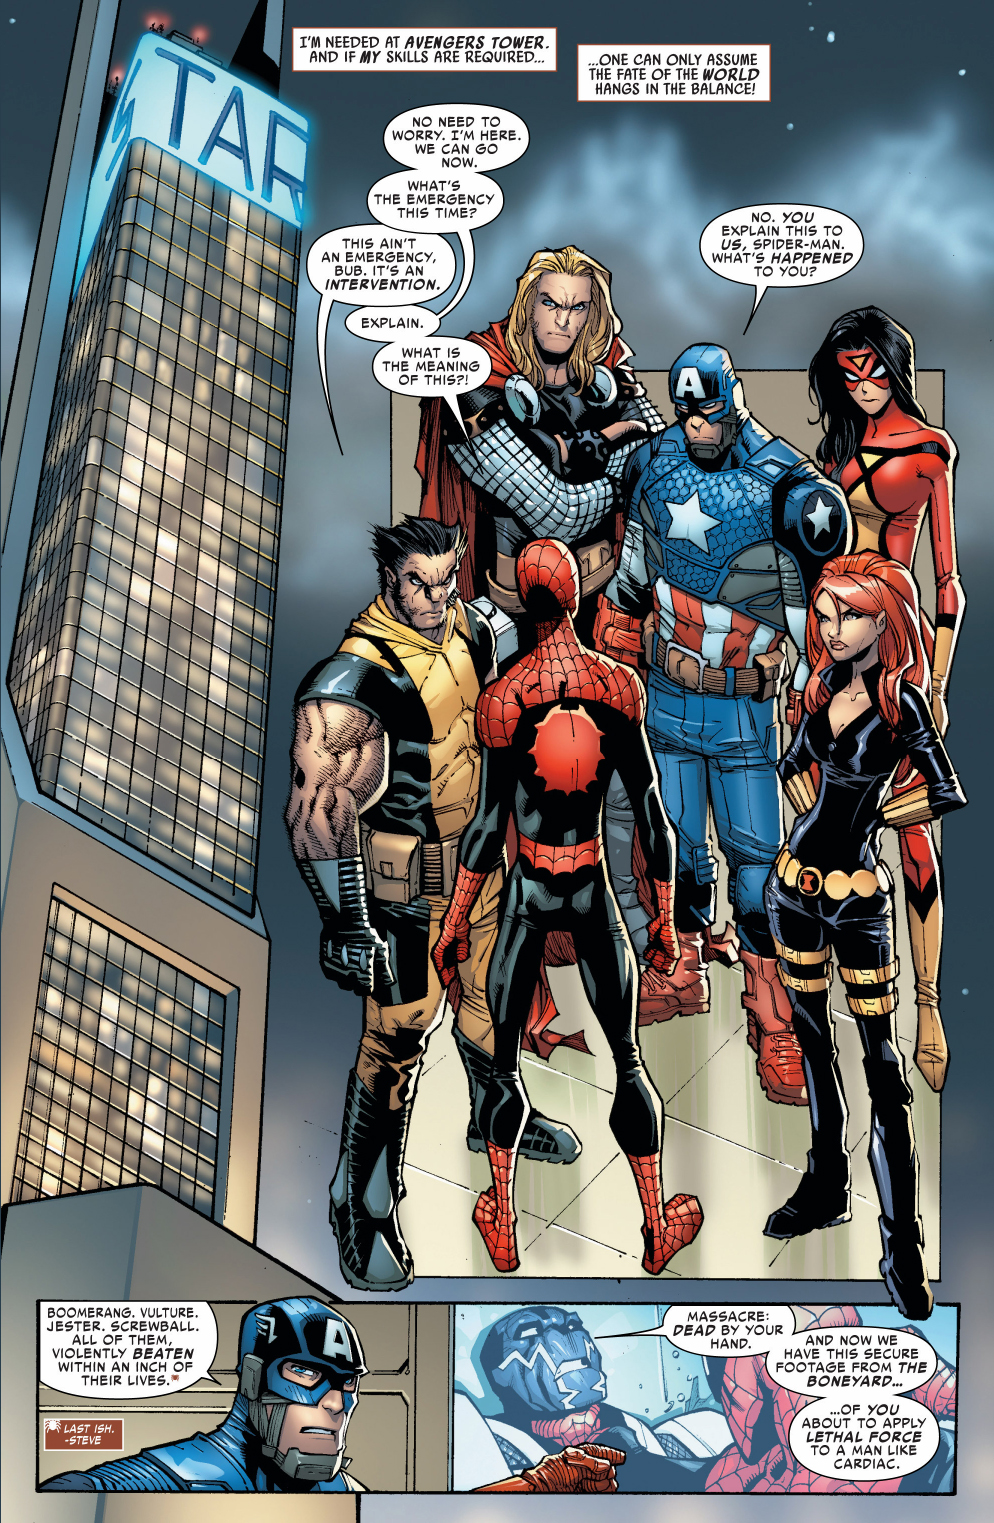 The Avengers: The Avengers Hold An Intervention For Superior Spider-Man